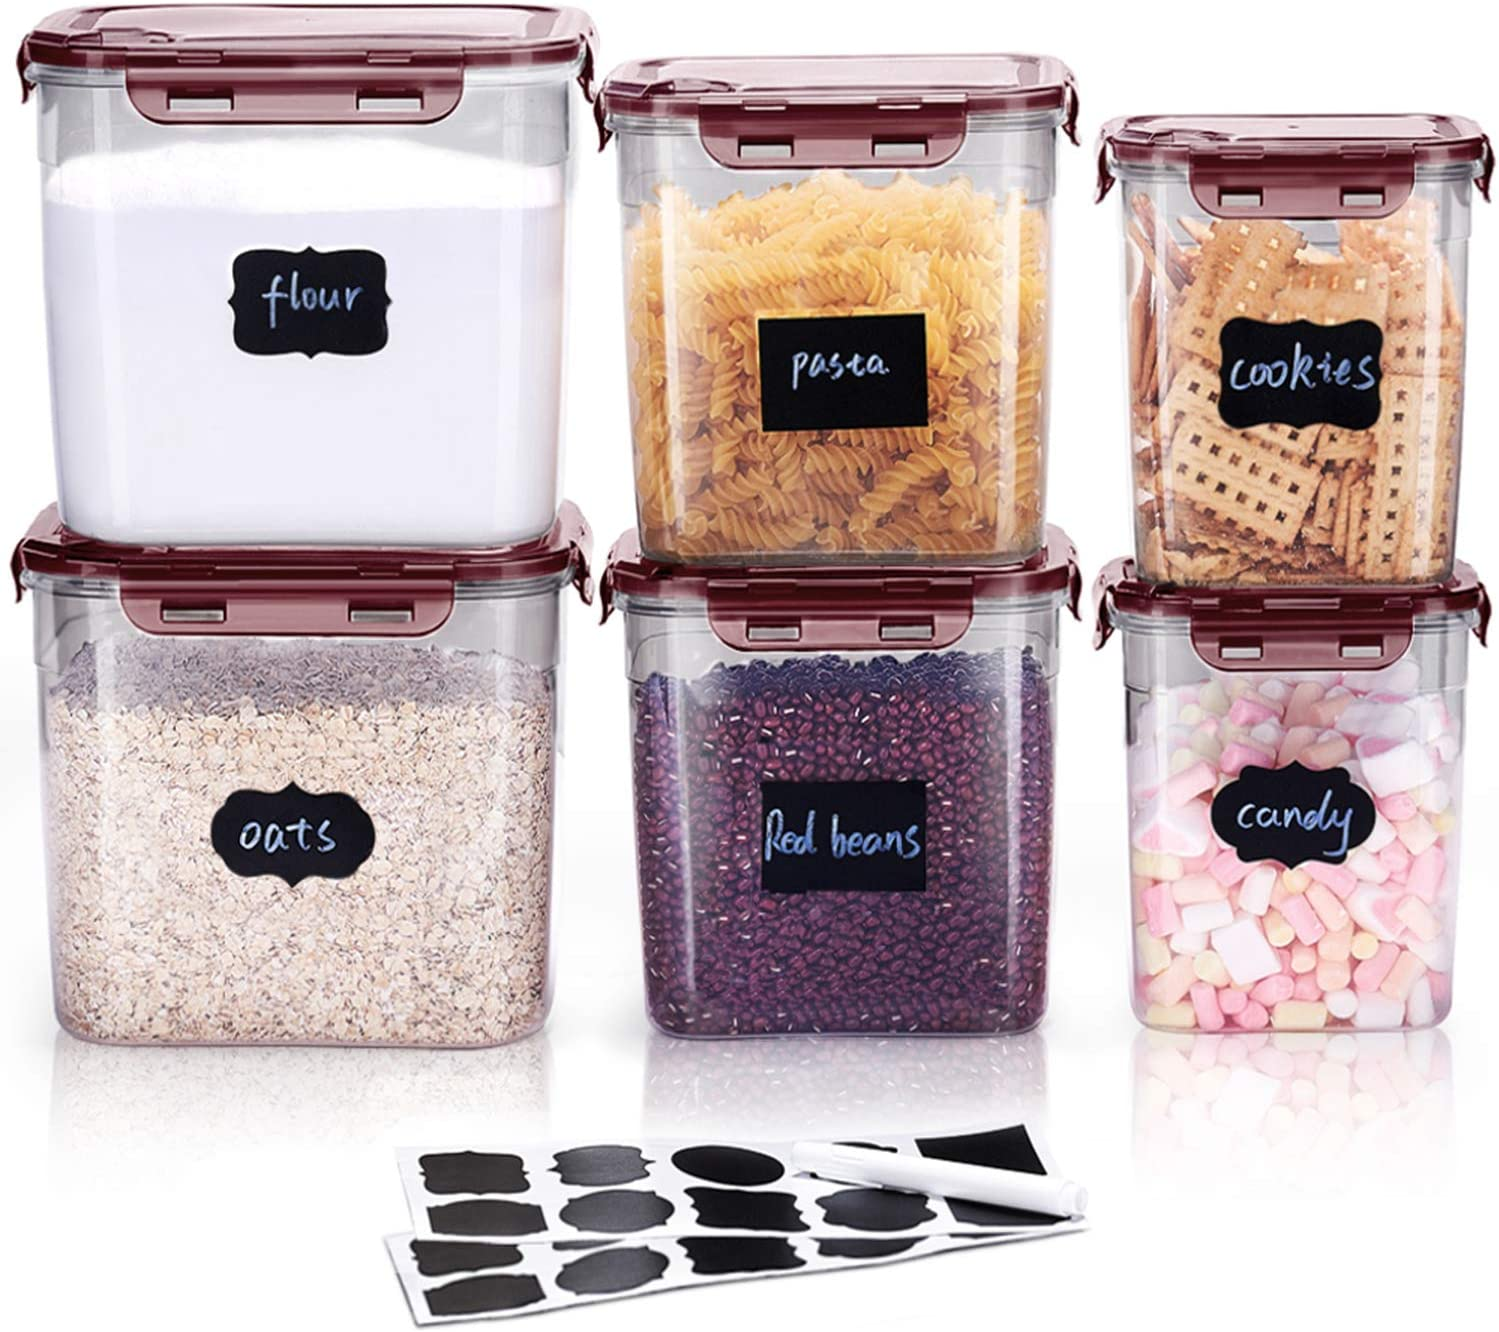 LARDERGO Cereal Container, 6 Pieces Plastic Flour Storage Containers, BPA Free Food Storage Containers with Lids Airtight for Sugar and Spaghetti - 20 Labels (Red)